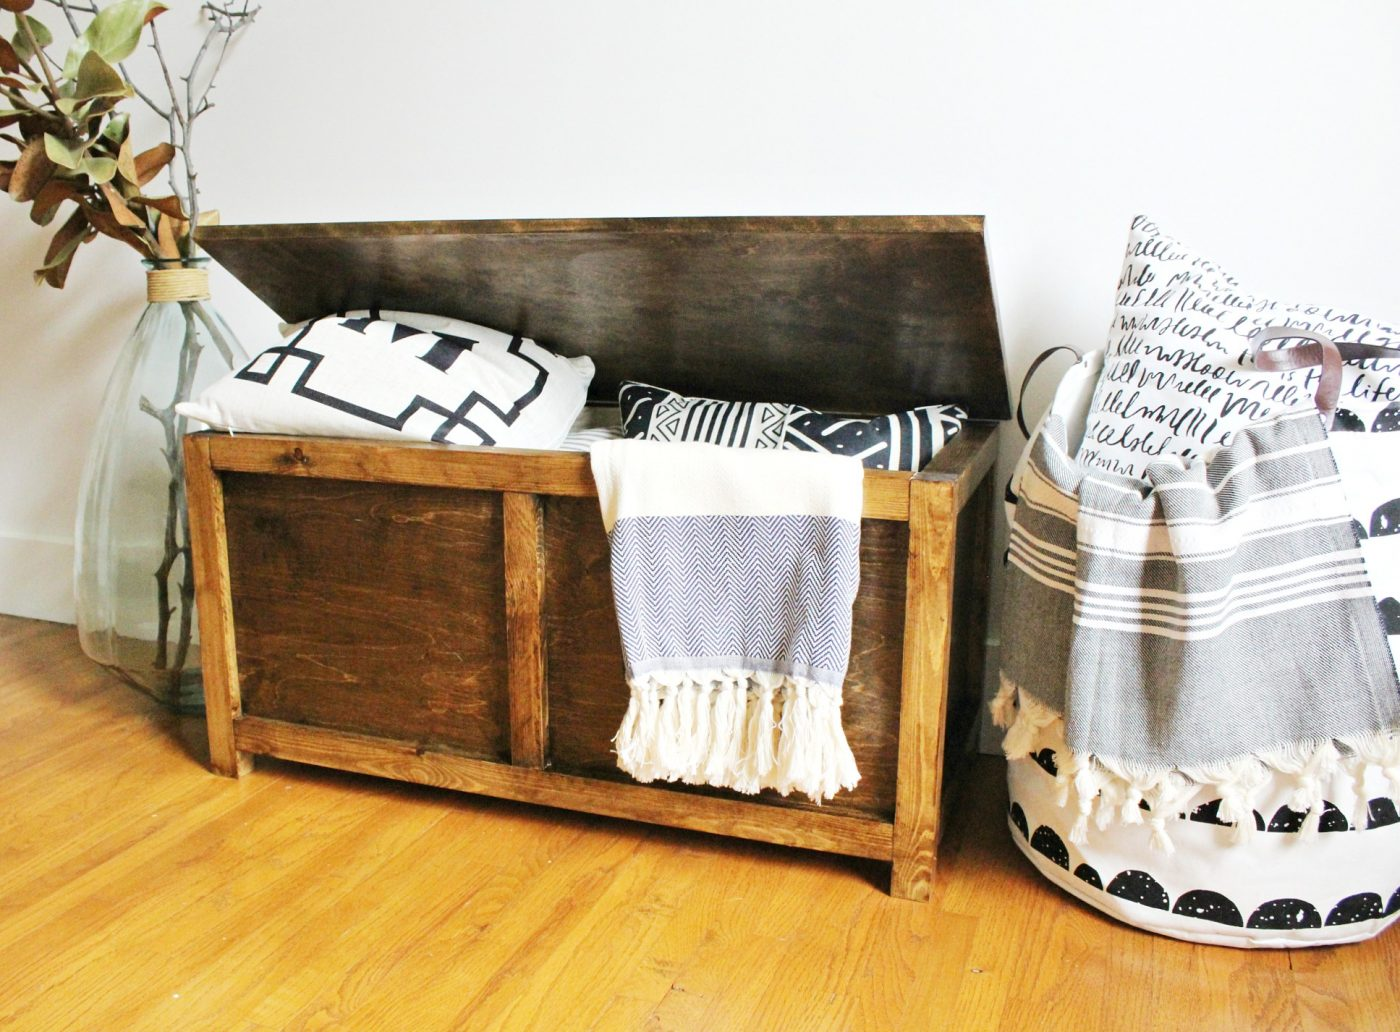 Free building plans to make your own DIY Storage chest & How to Build a Simple DIY Storage Chest